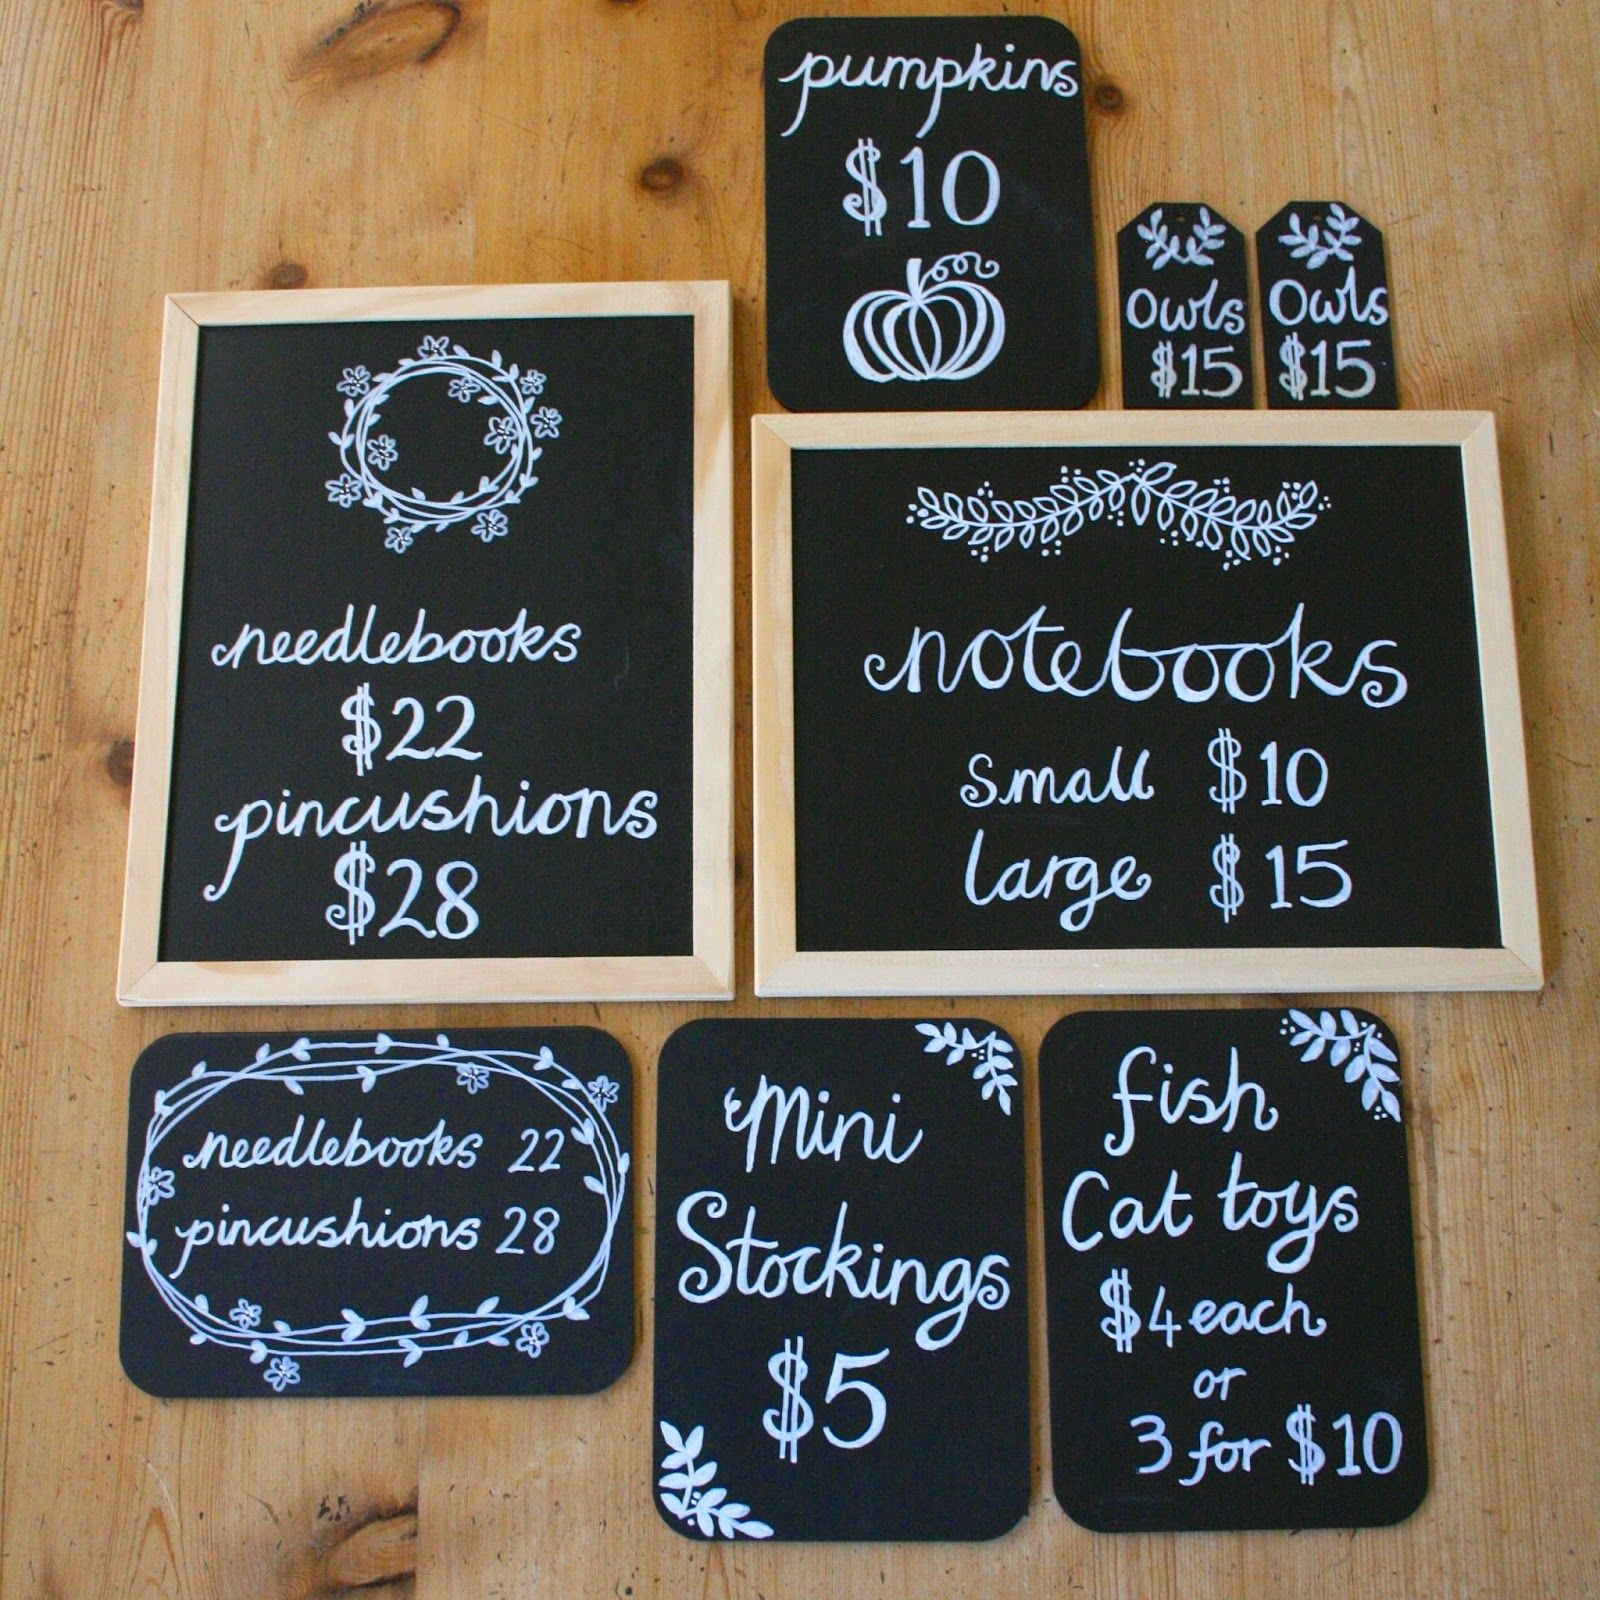 Craft fair chalkboard signs craft fair booth ideas pinterest craft fair chalkboard signs jeuxipadfo Image collections